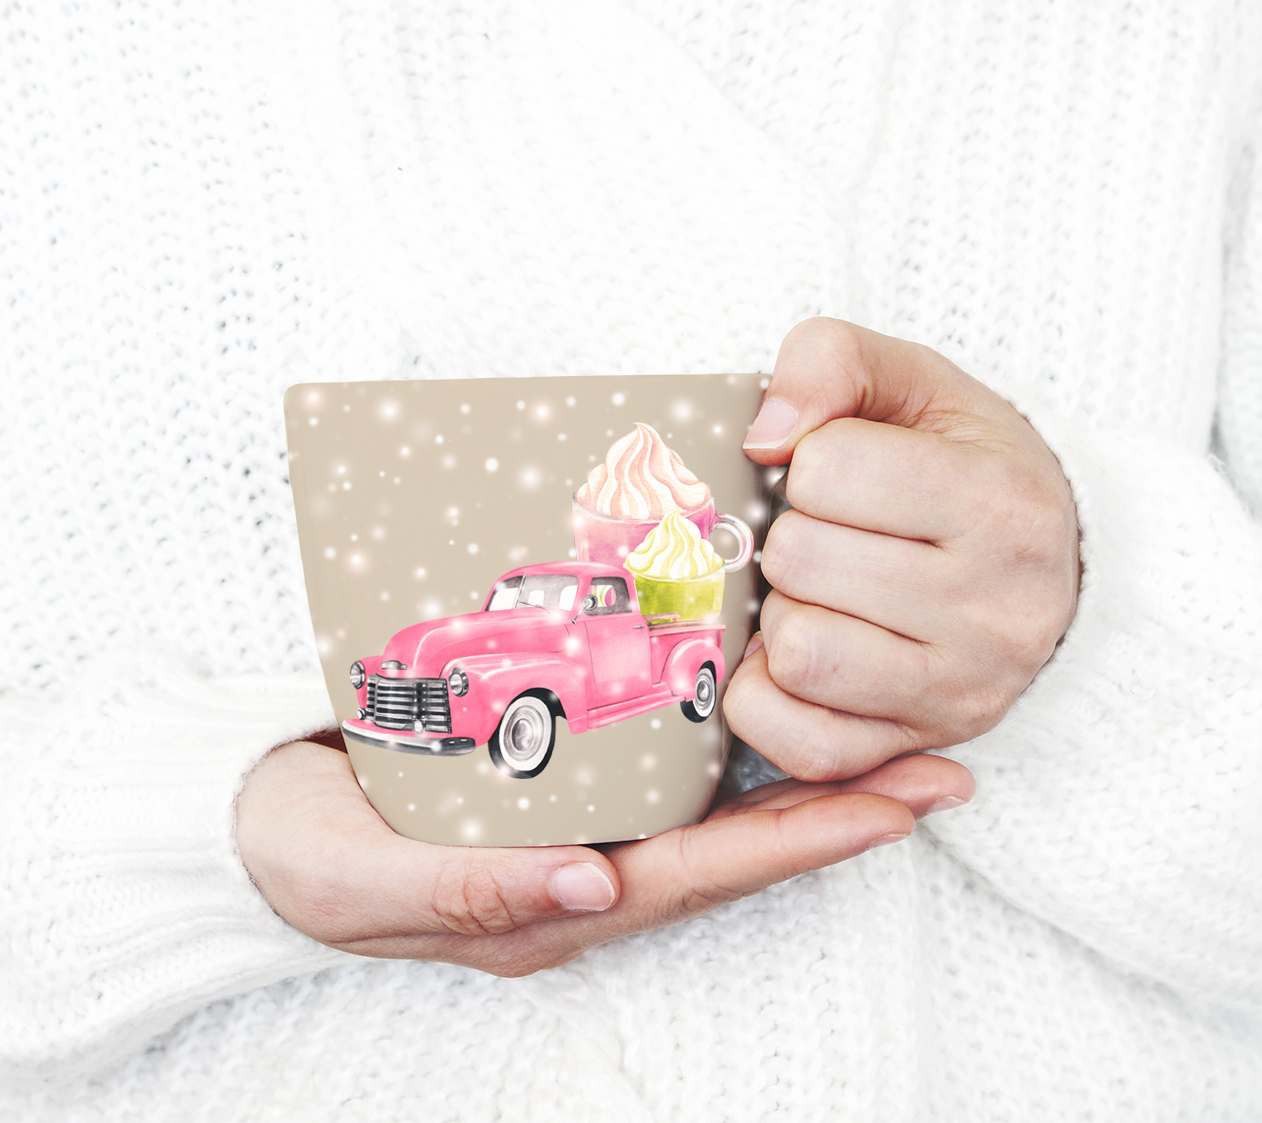 Watercolor Christmas pink pick-up cliparts example image 4